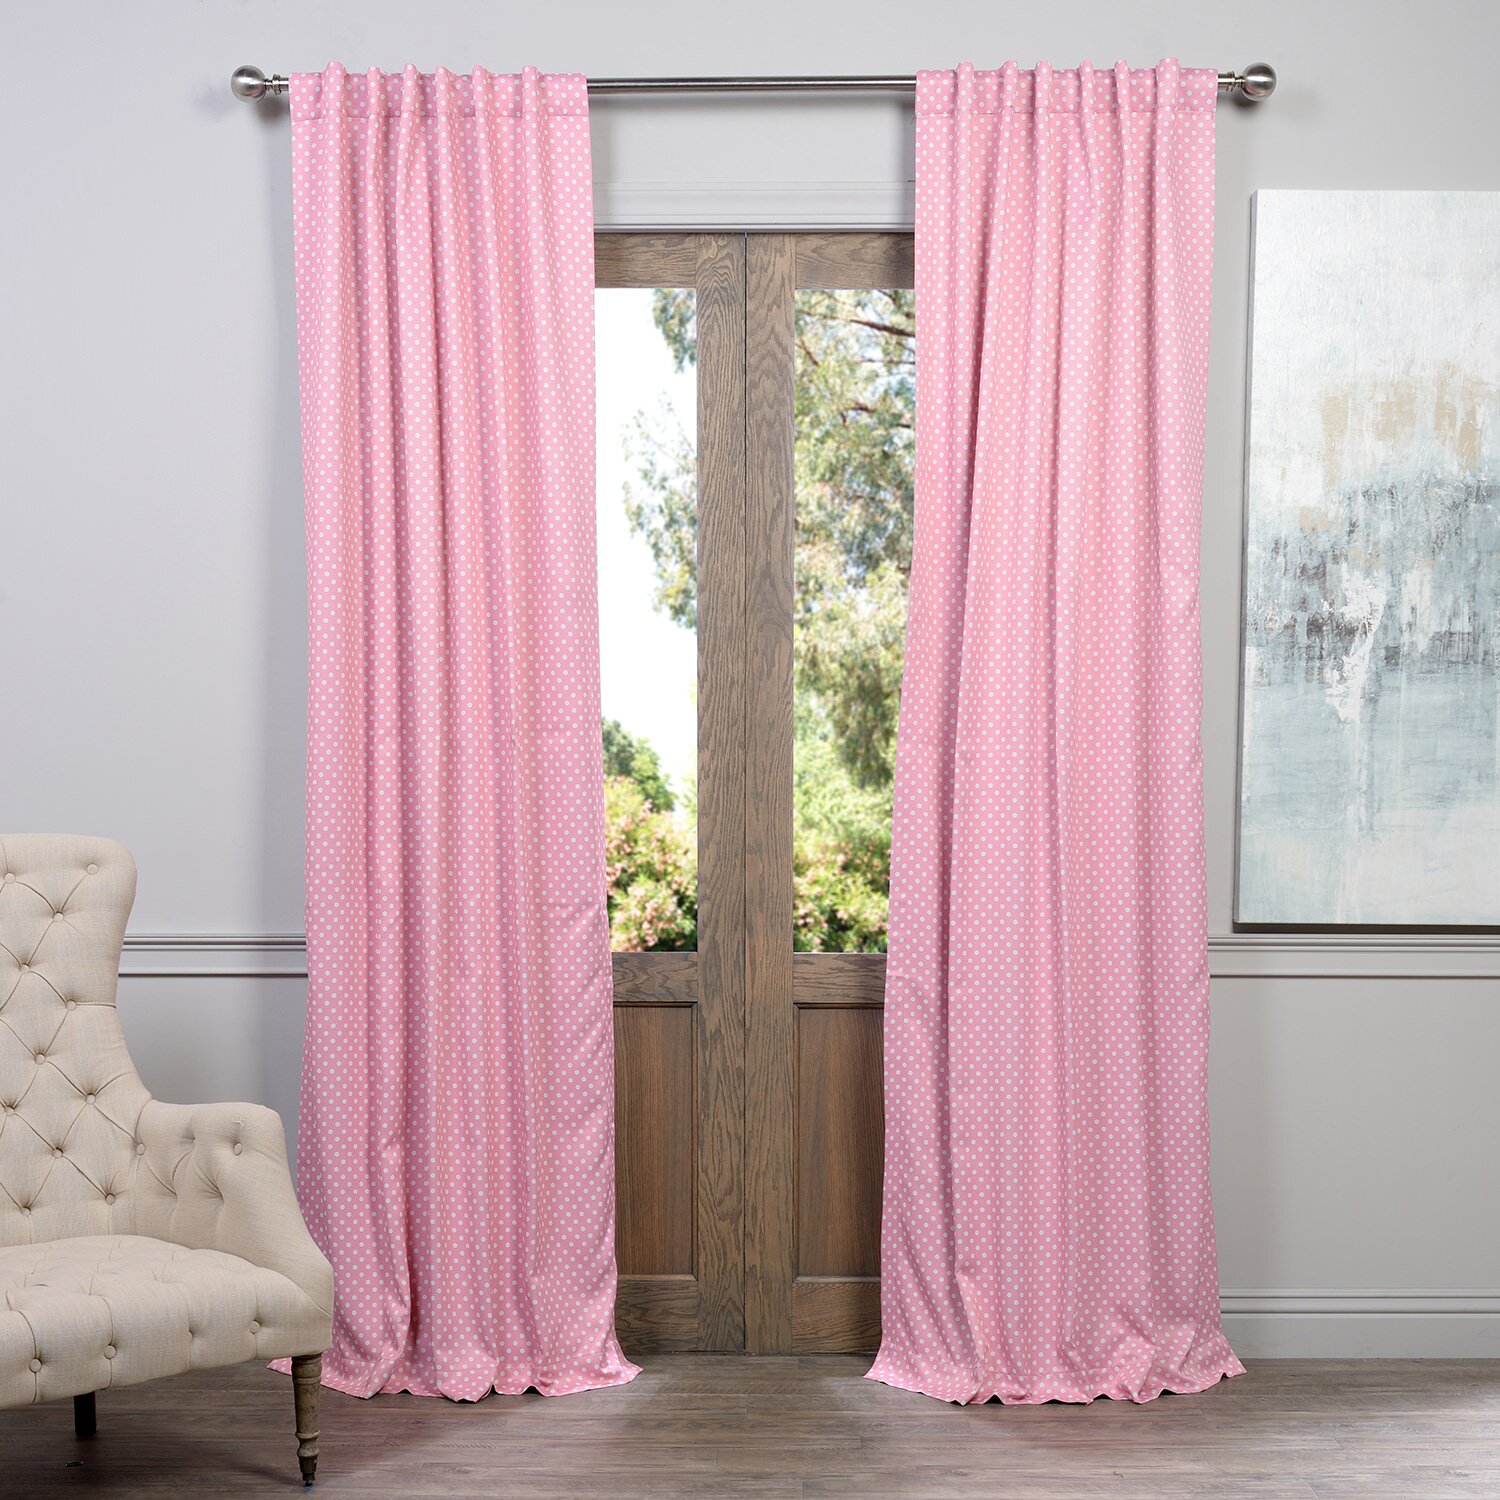 Pink and white polka dot curtains - Half Ds Polka Dot Blackout Thermal Single Curtain Panel